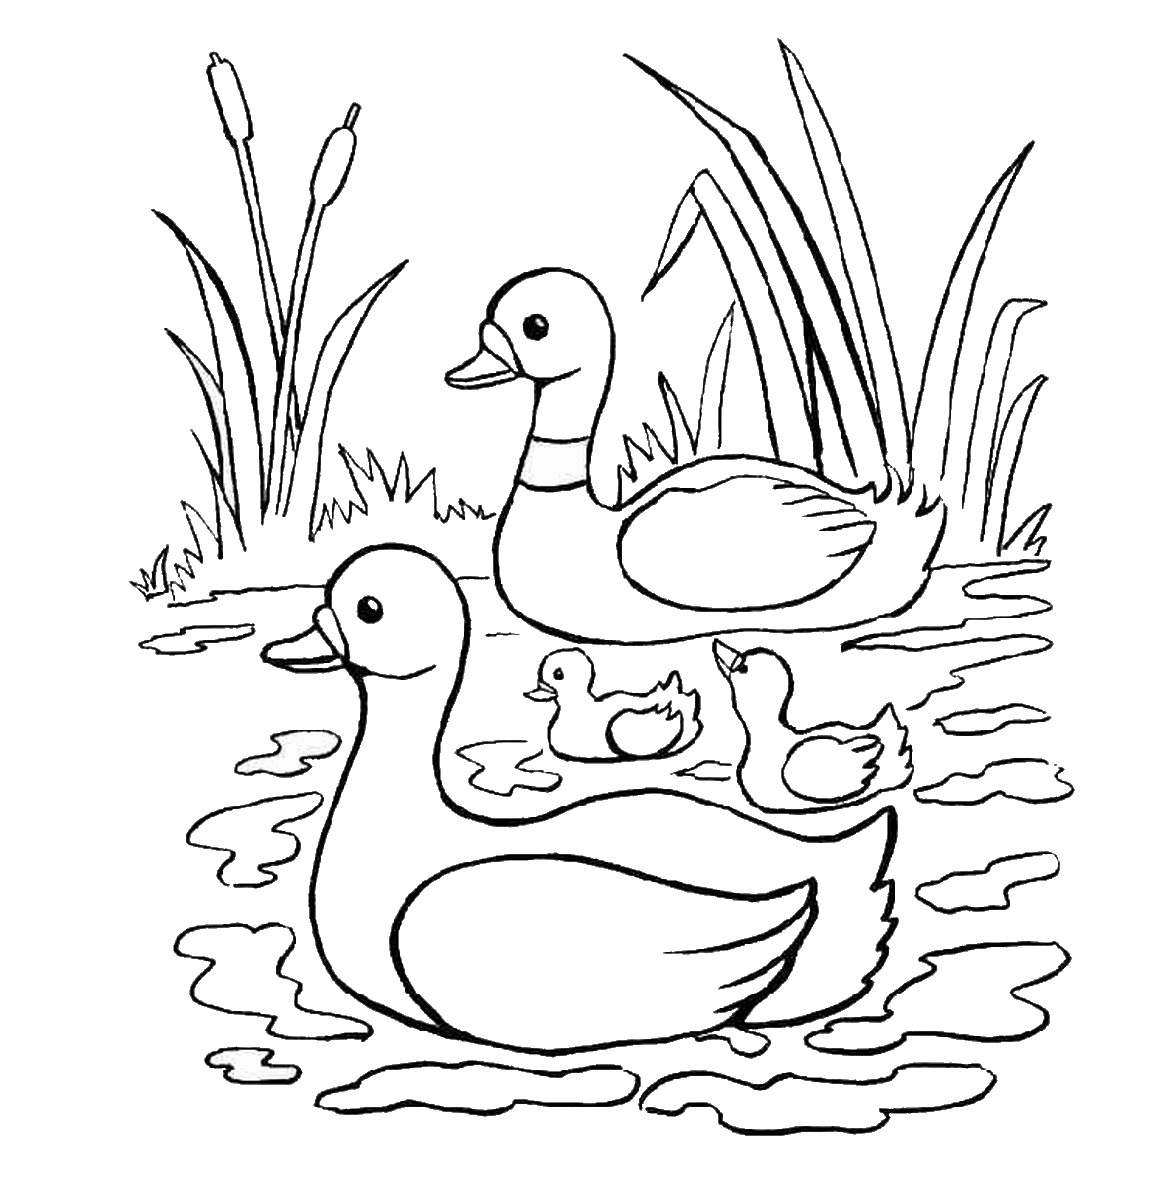 Duck coloring pictures